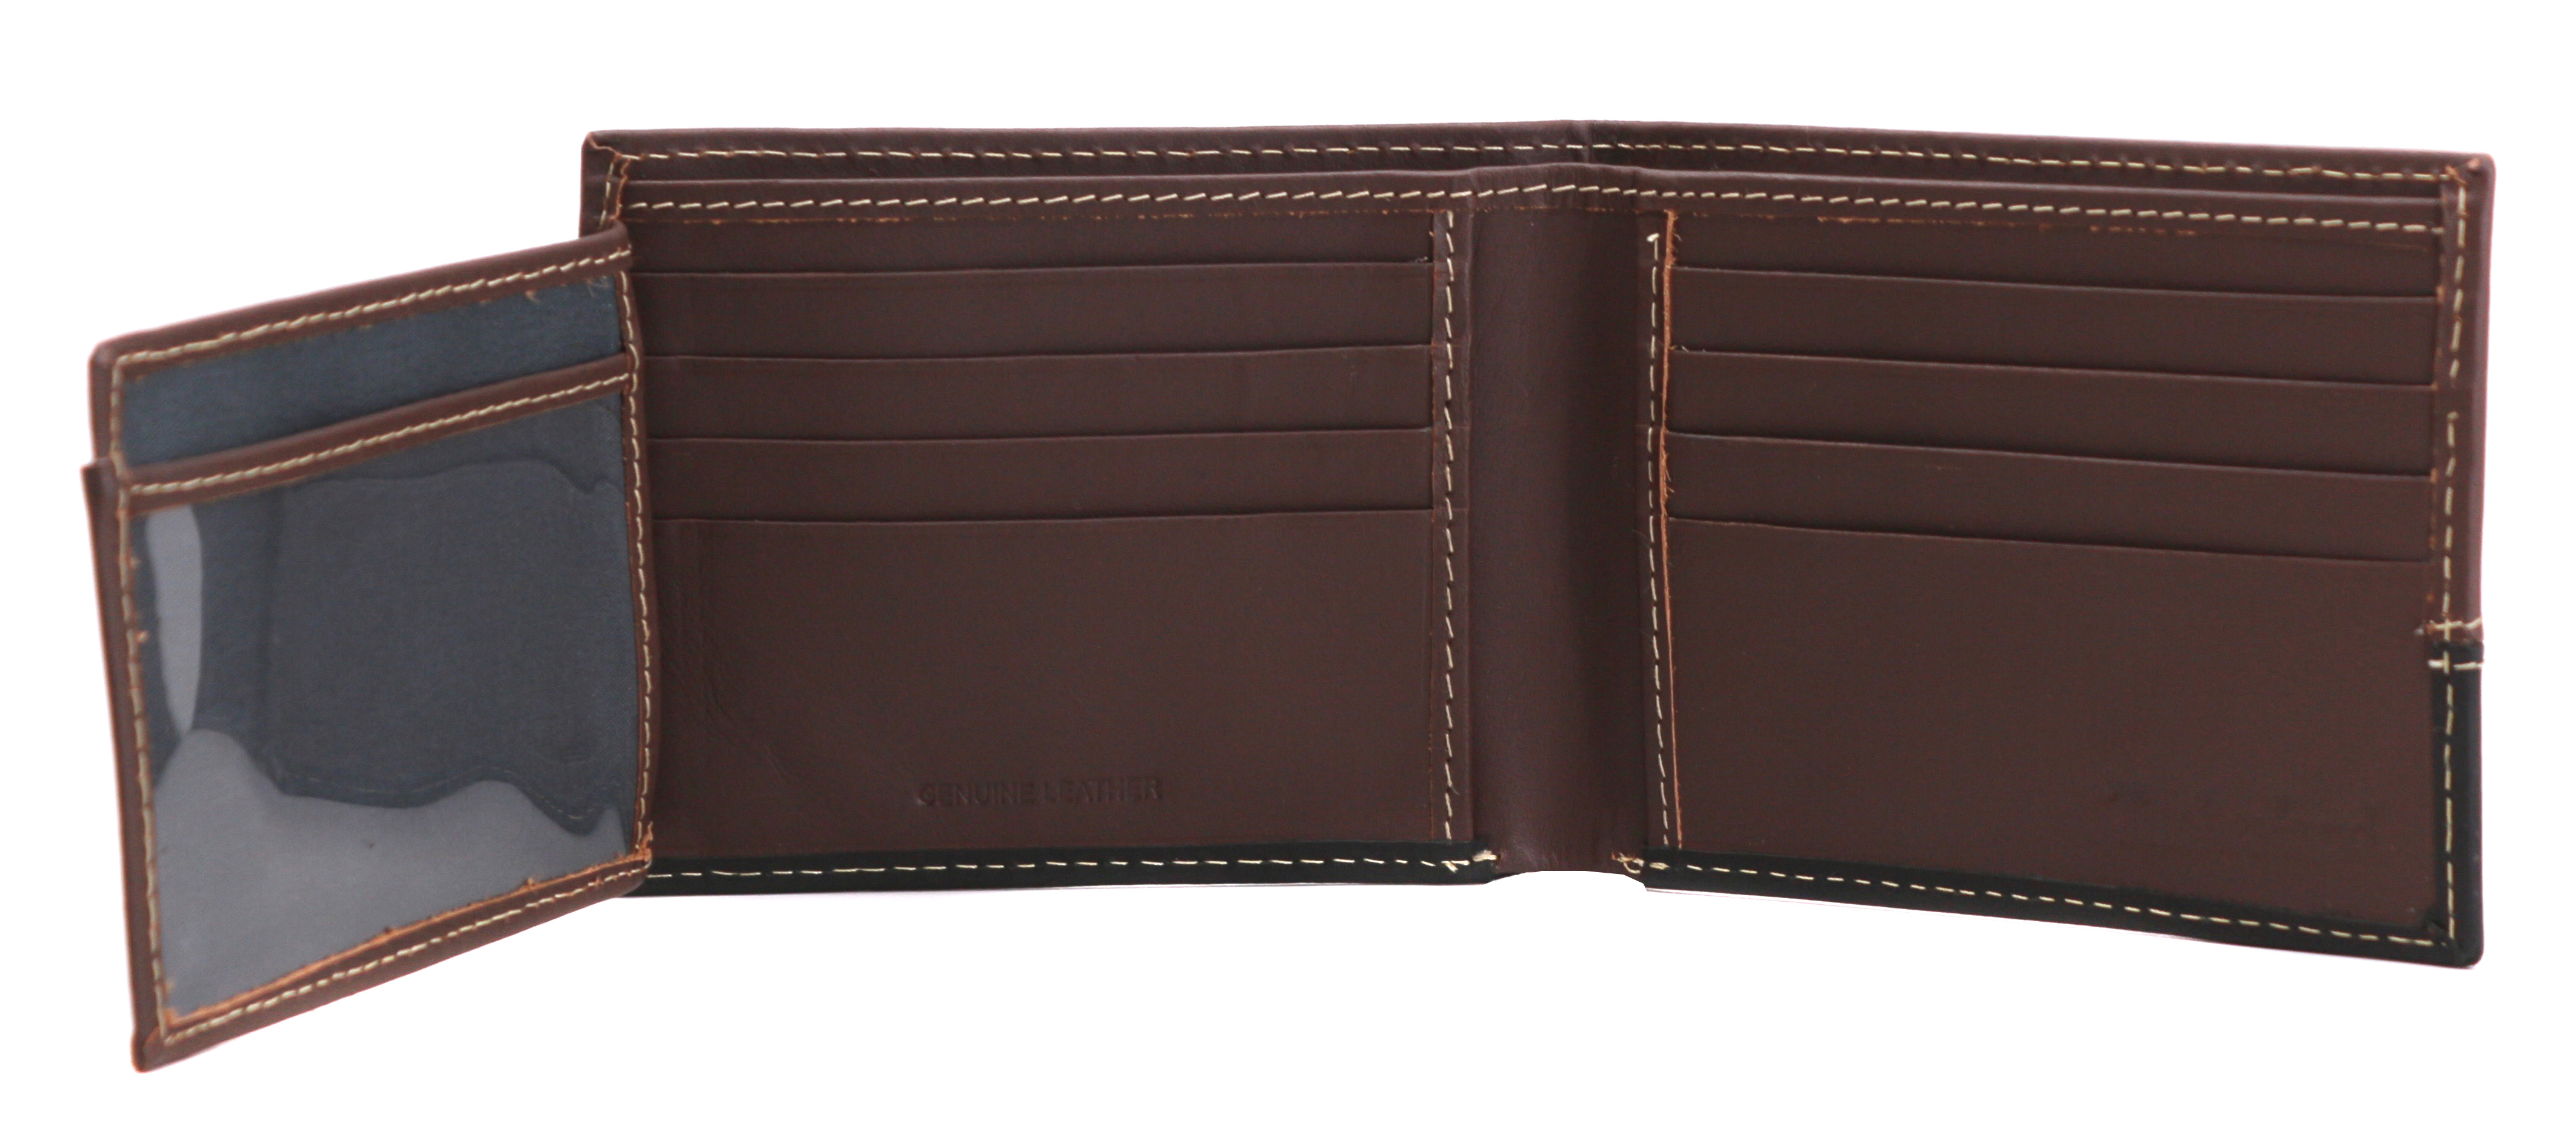 Timberland-Men-039-s-Genuine-Two-Tone-Leather-Credit-Card-Billfold-Commuter-Wallet thumbnail 5